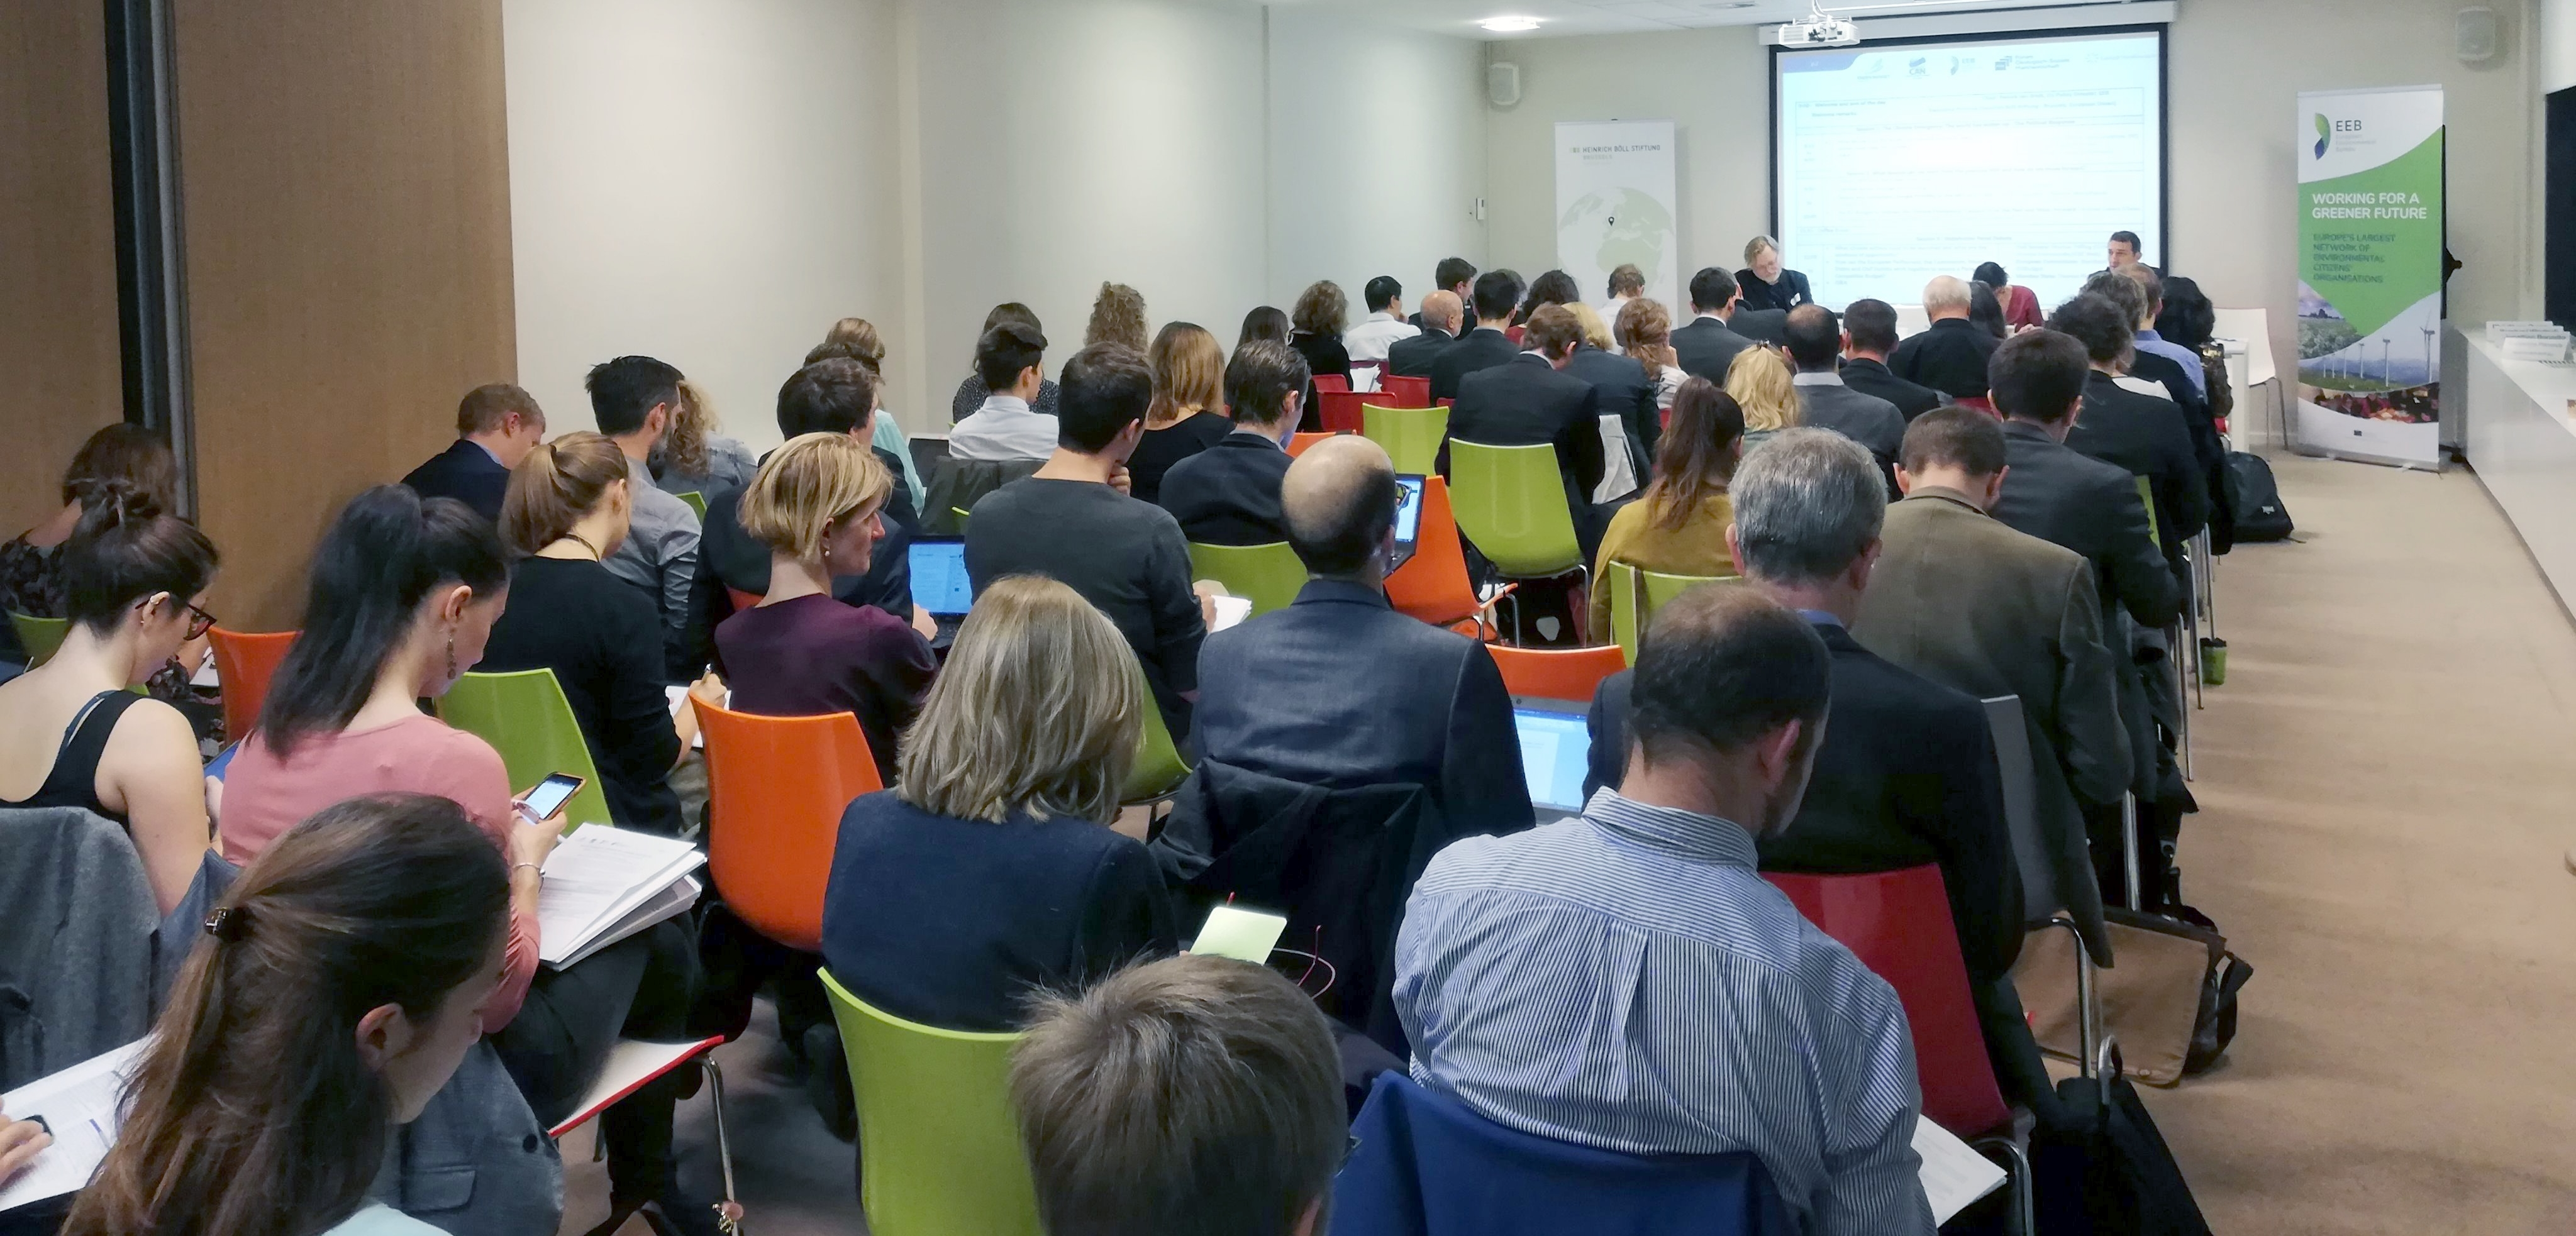 Full conference room in Brussels